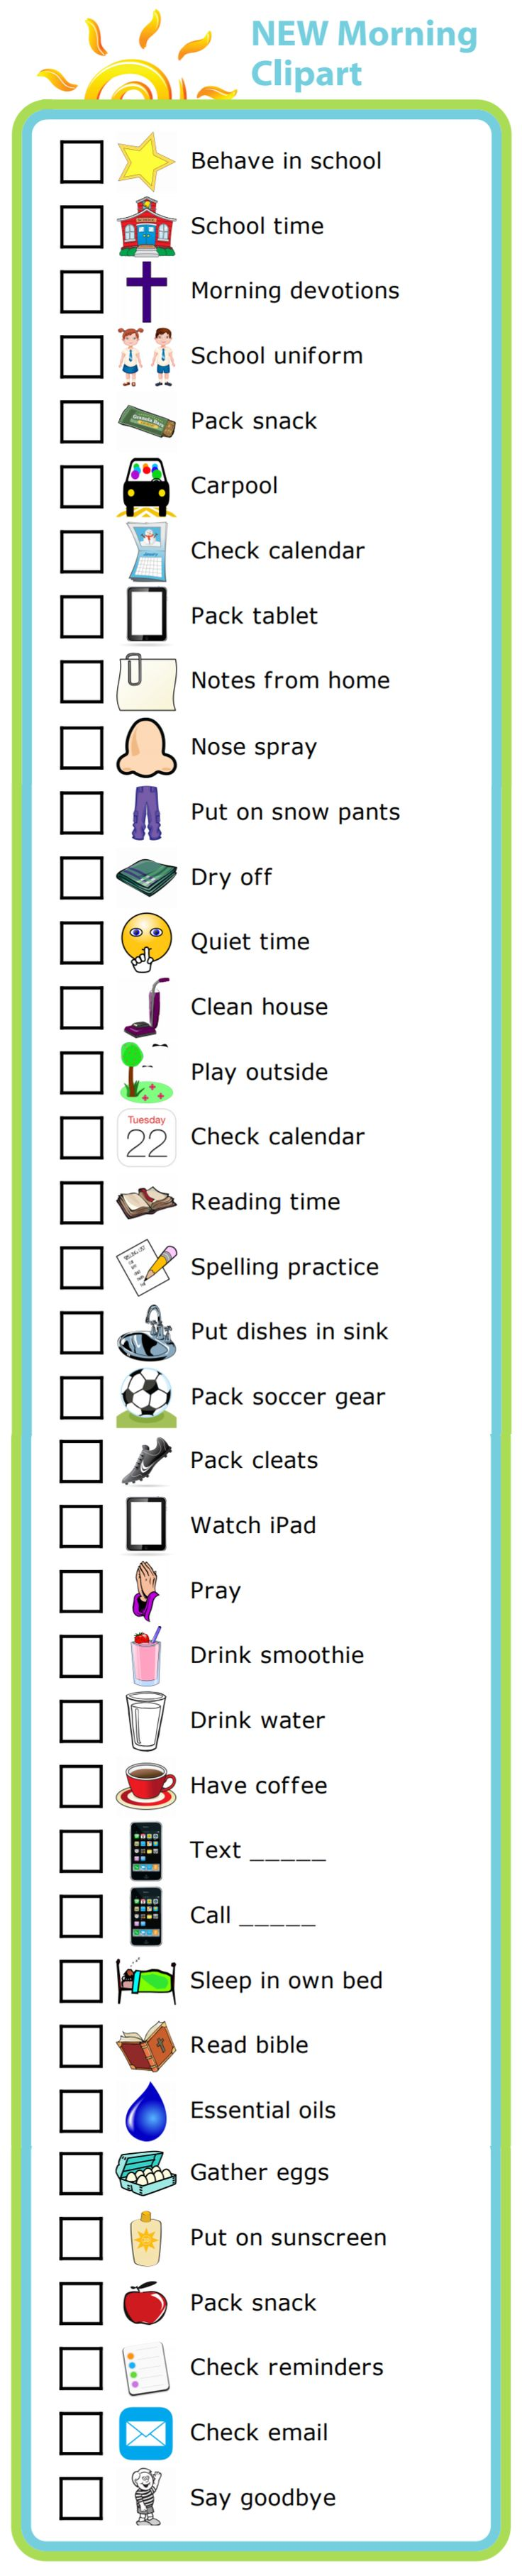 "37 new images for the morning routine activity, including the much requested ""sleep in your own bed""! Use them to create your own, custom morning routine checklist."